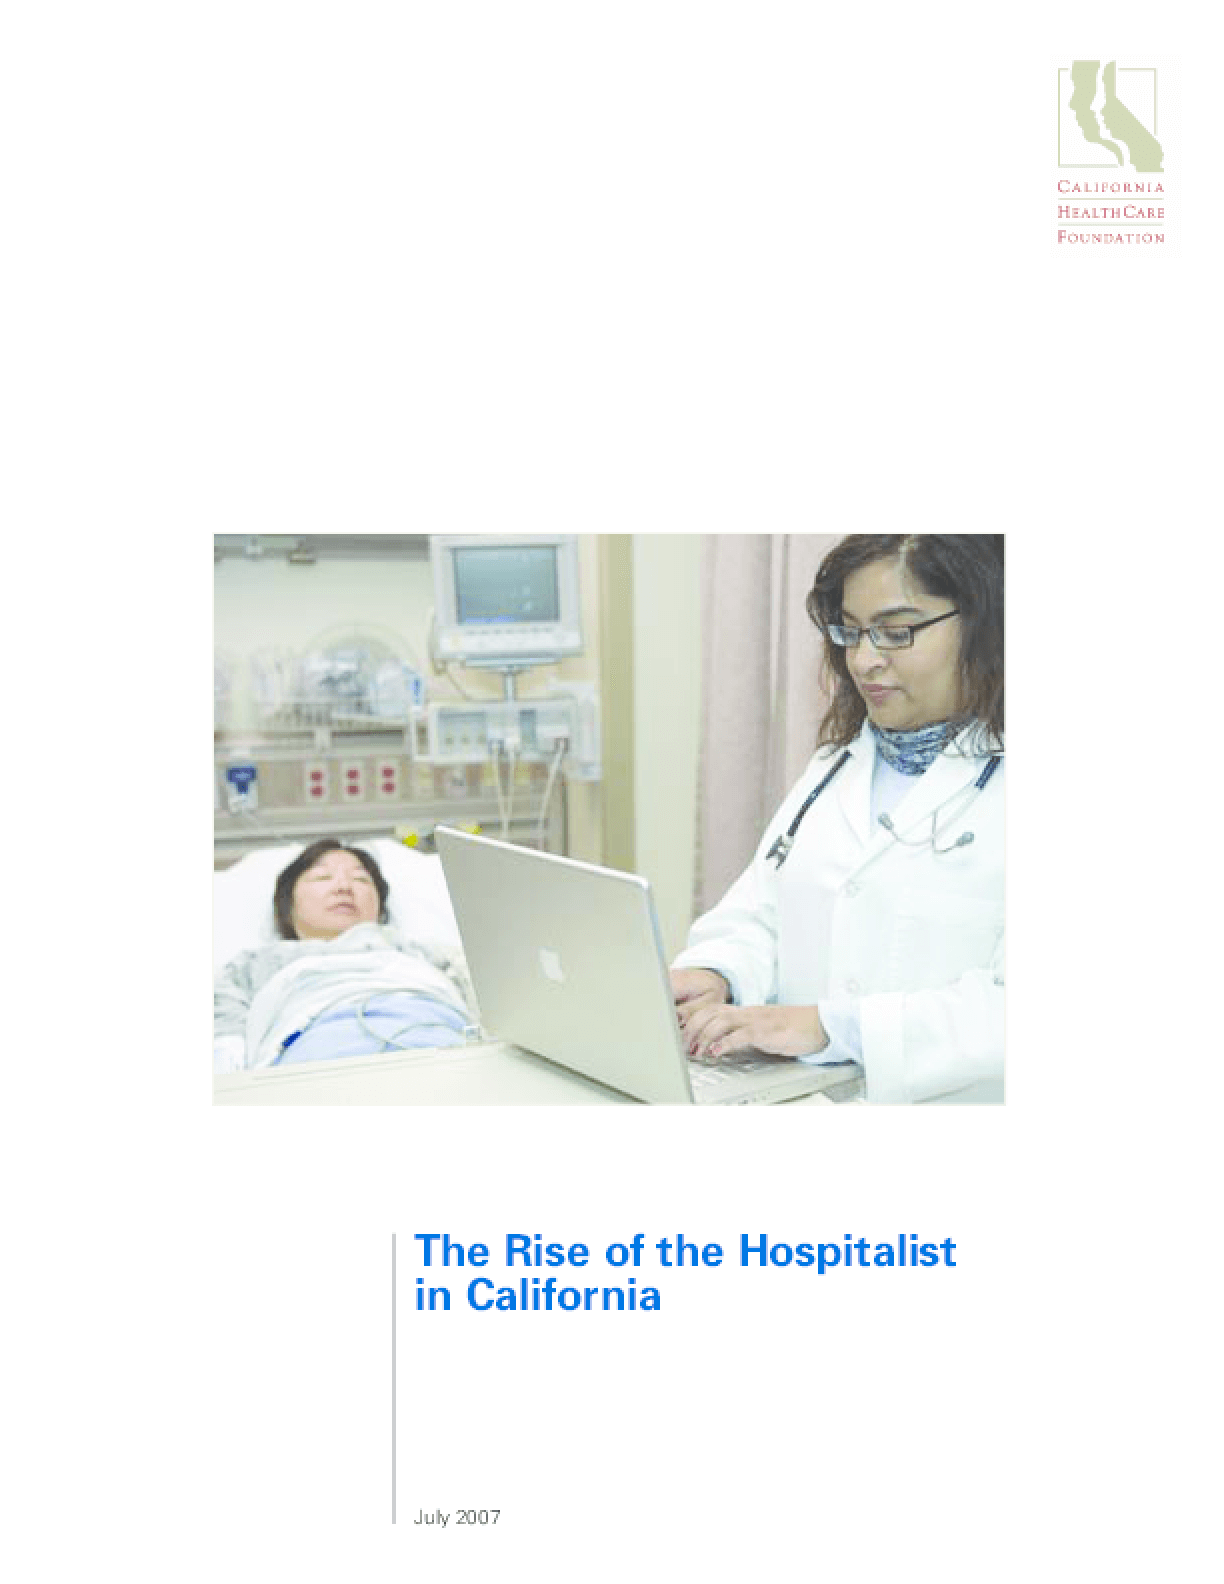 The Rise of the Hospitalist in California